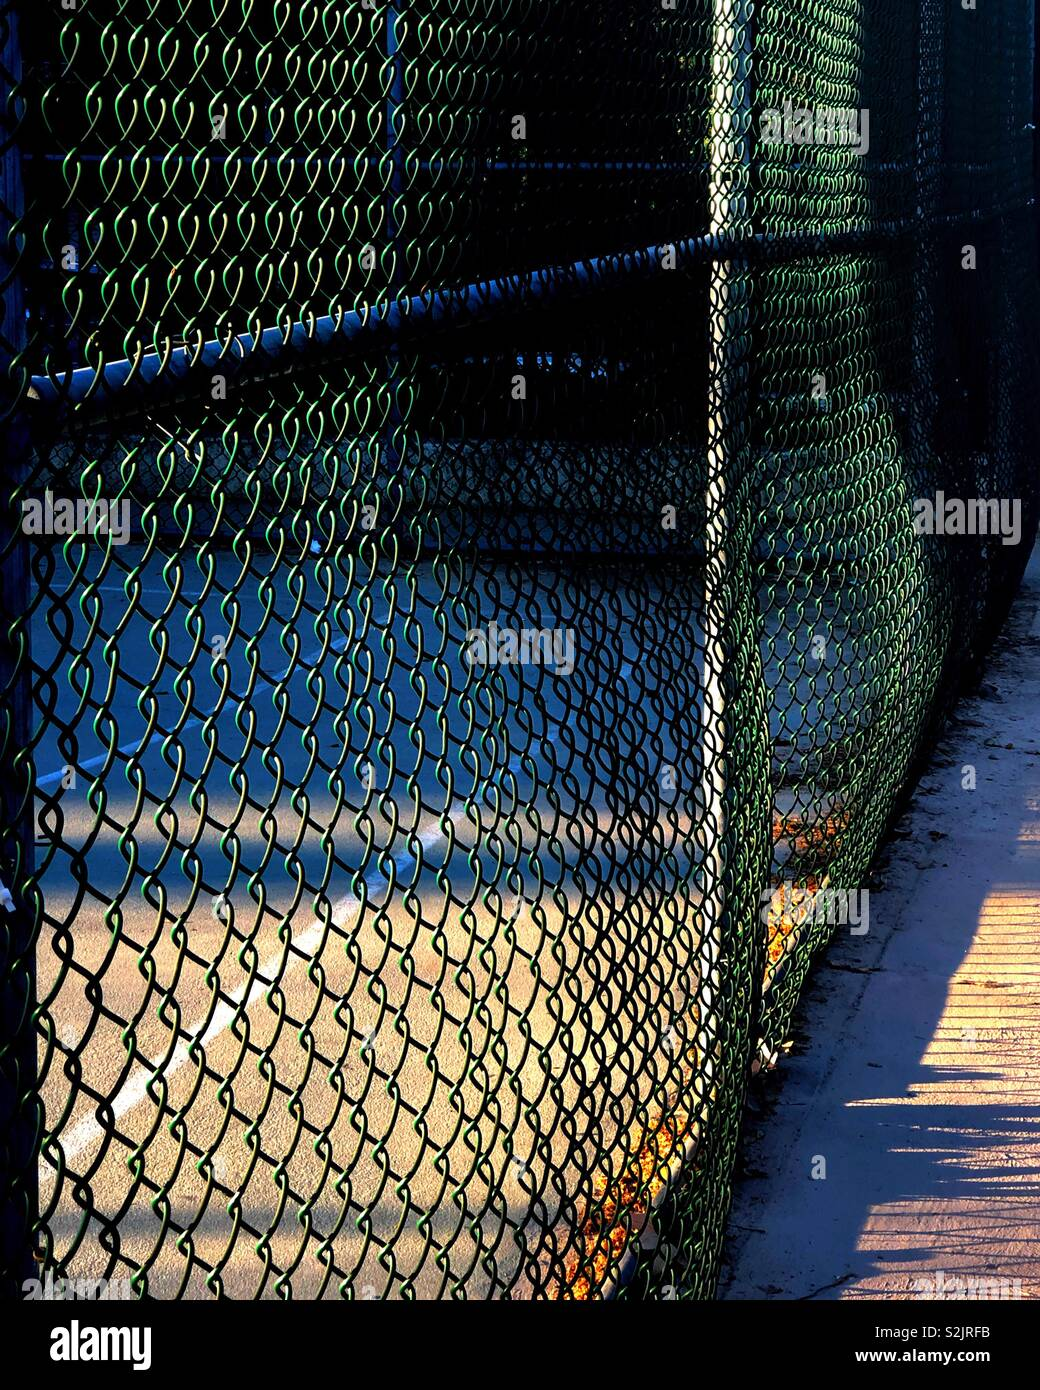 Sunrise casts shadows on a basketball court and the surrounding fence - Stock Image